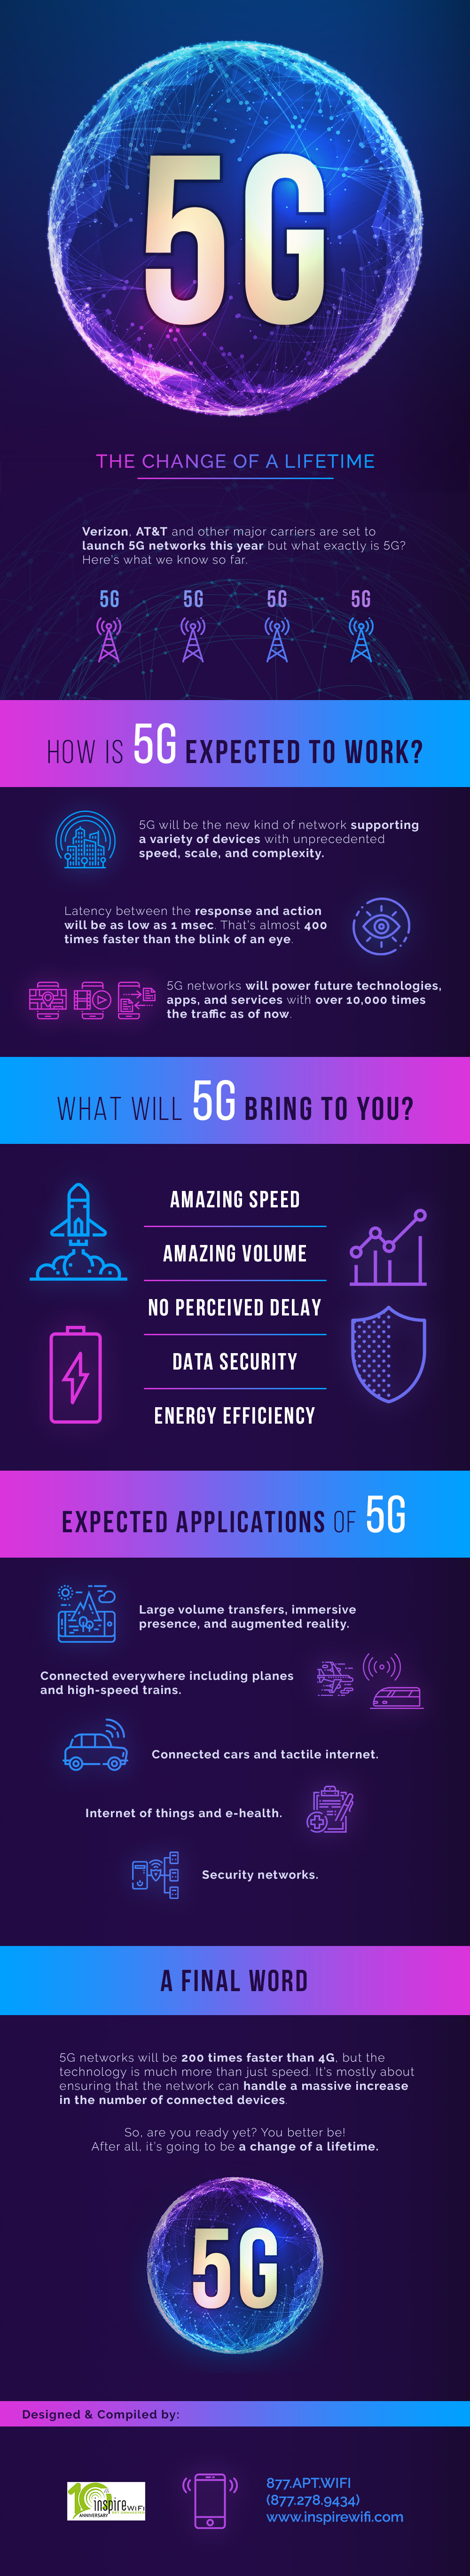 The 5G World – A Whole New Ballgame! - Infographic